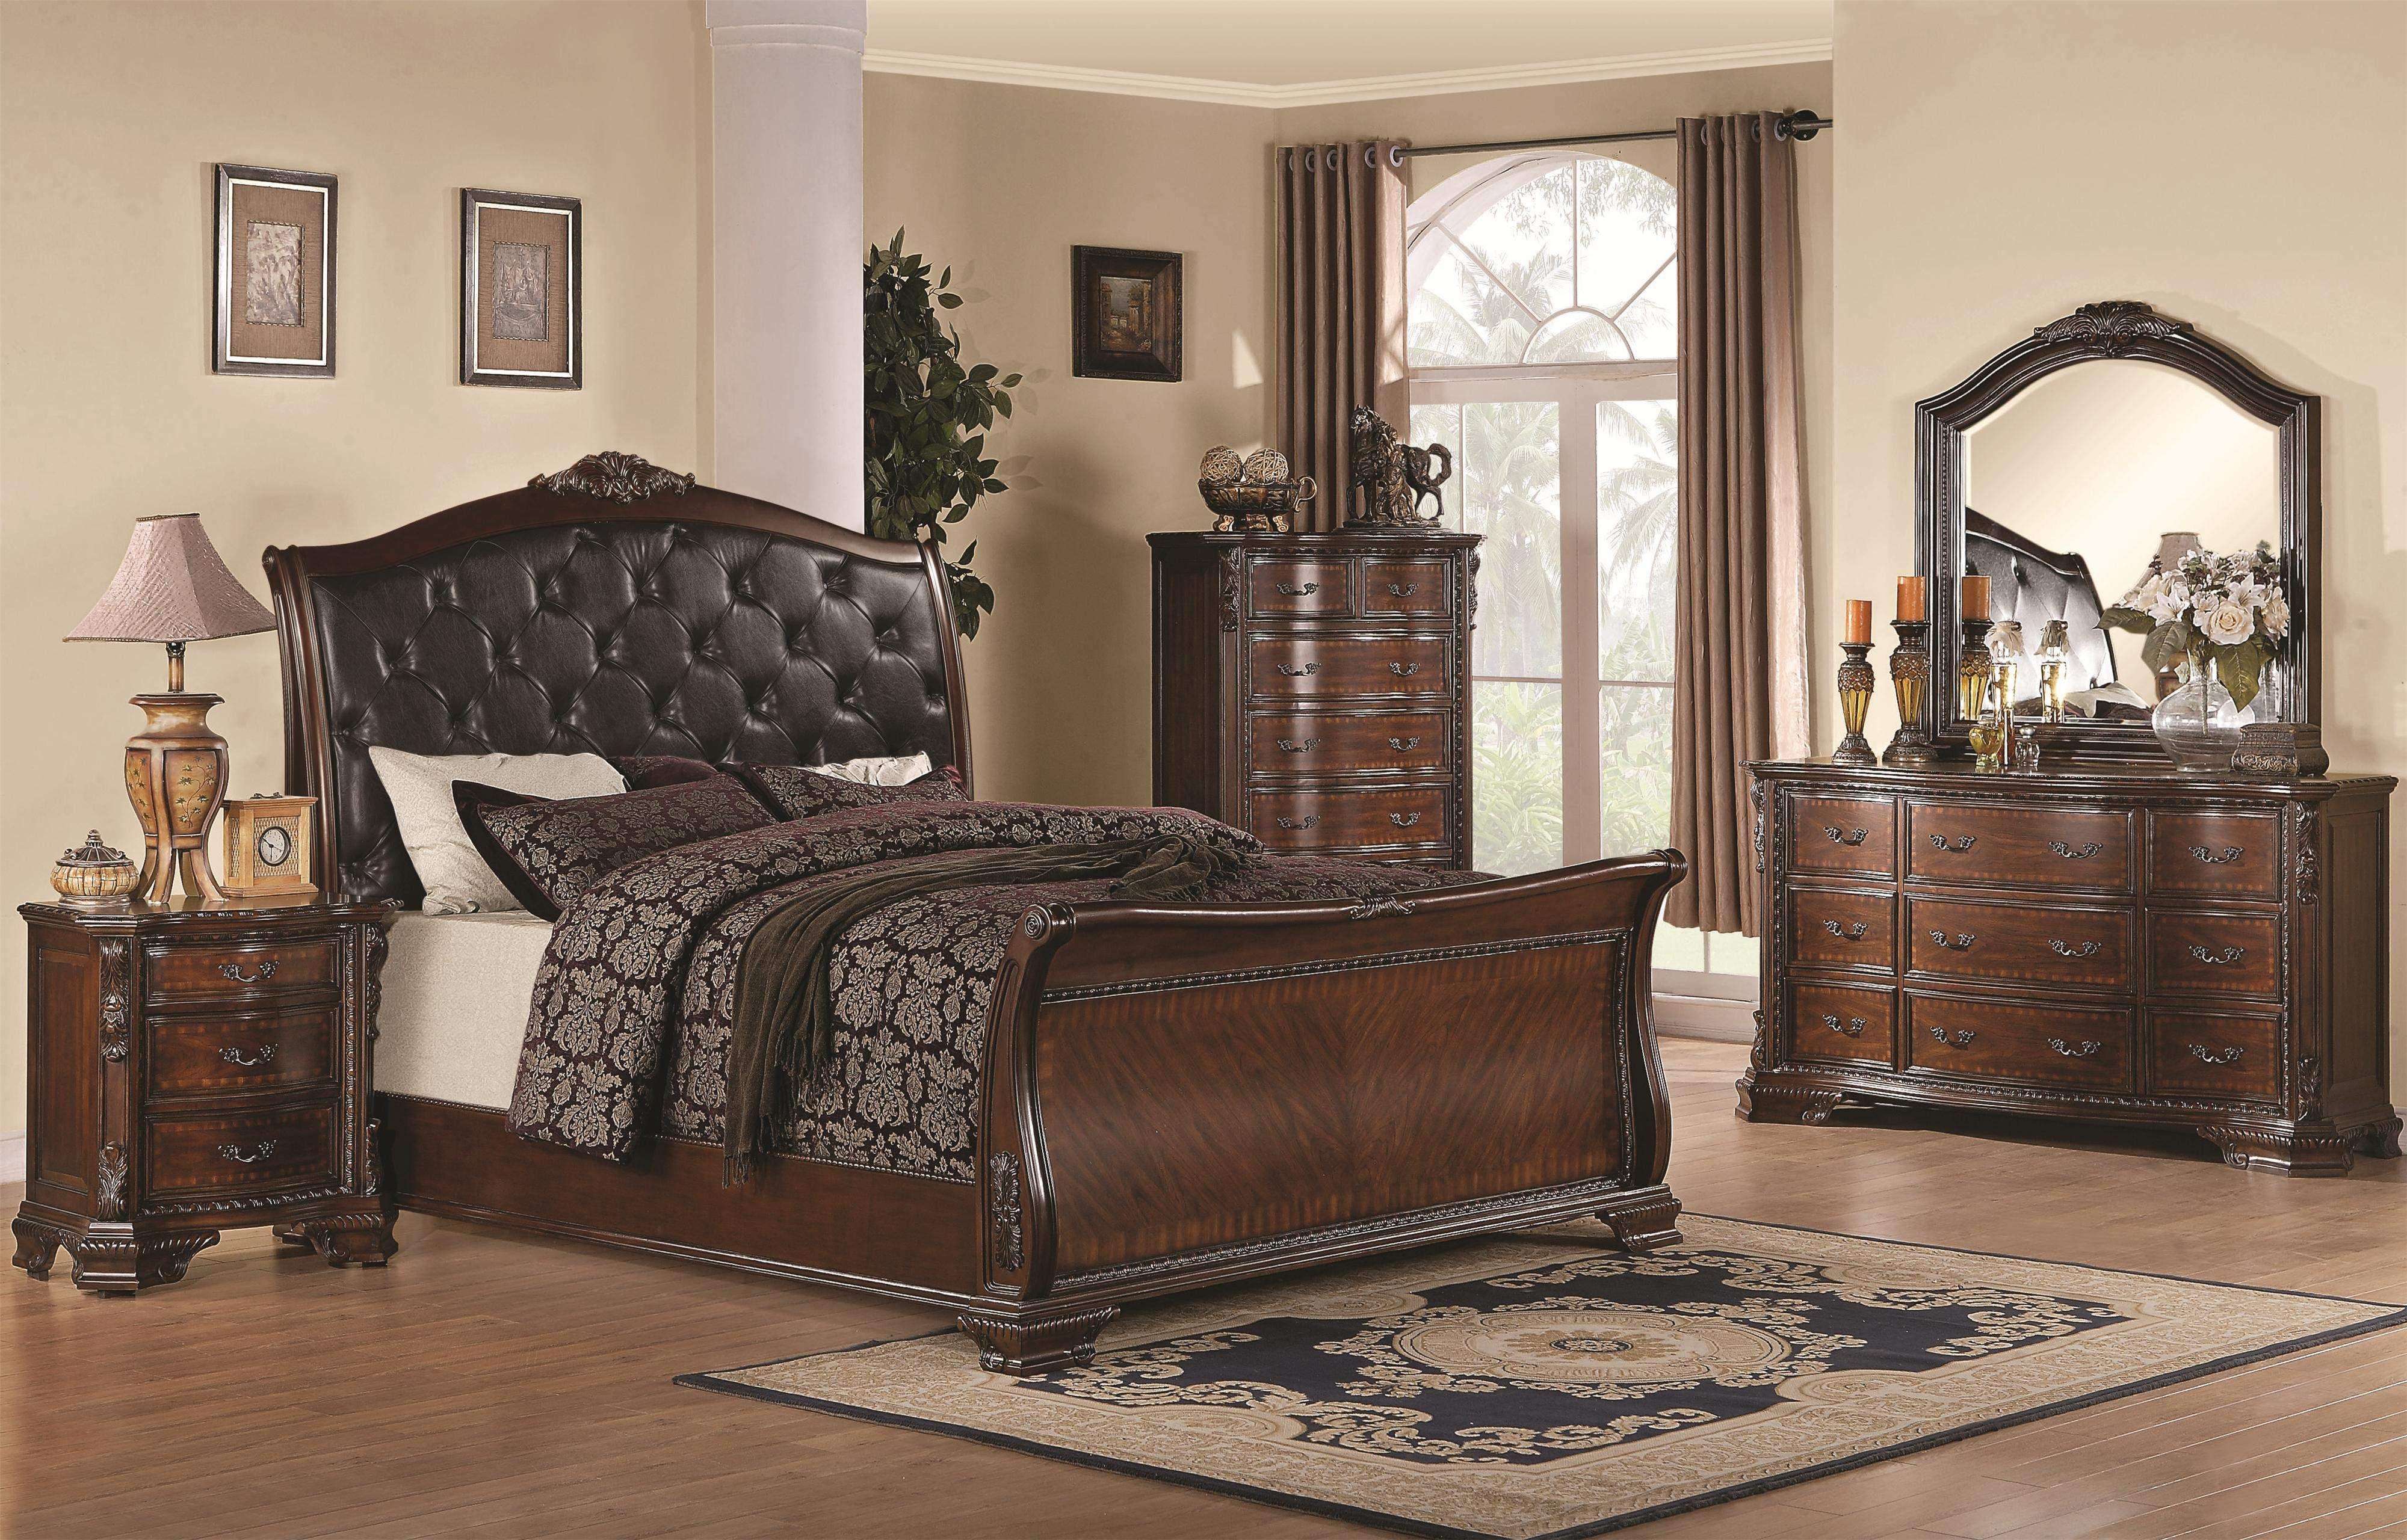 Maddison by Coaster 11 piece Bed set in 11  Bedroom furniture